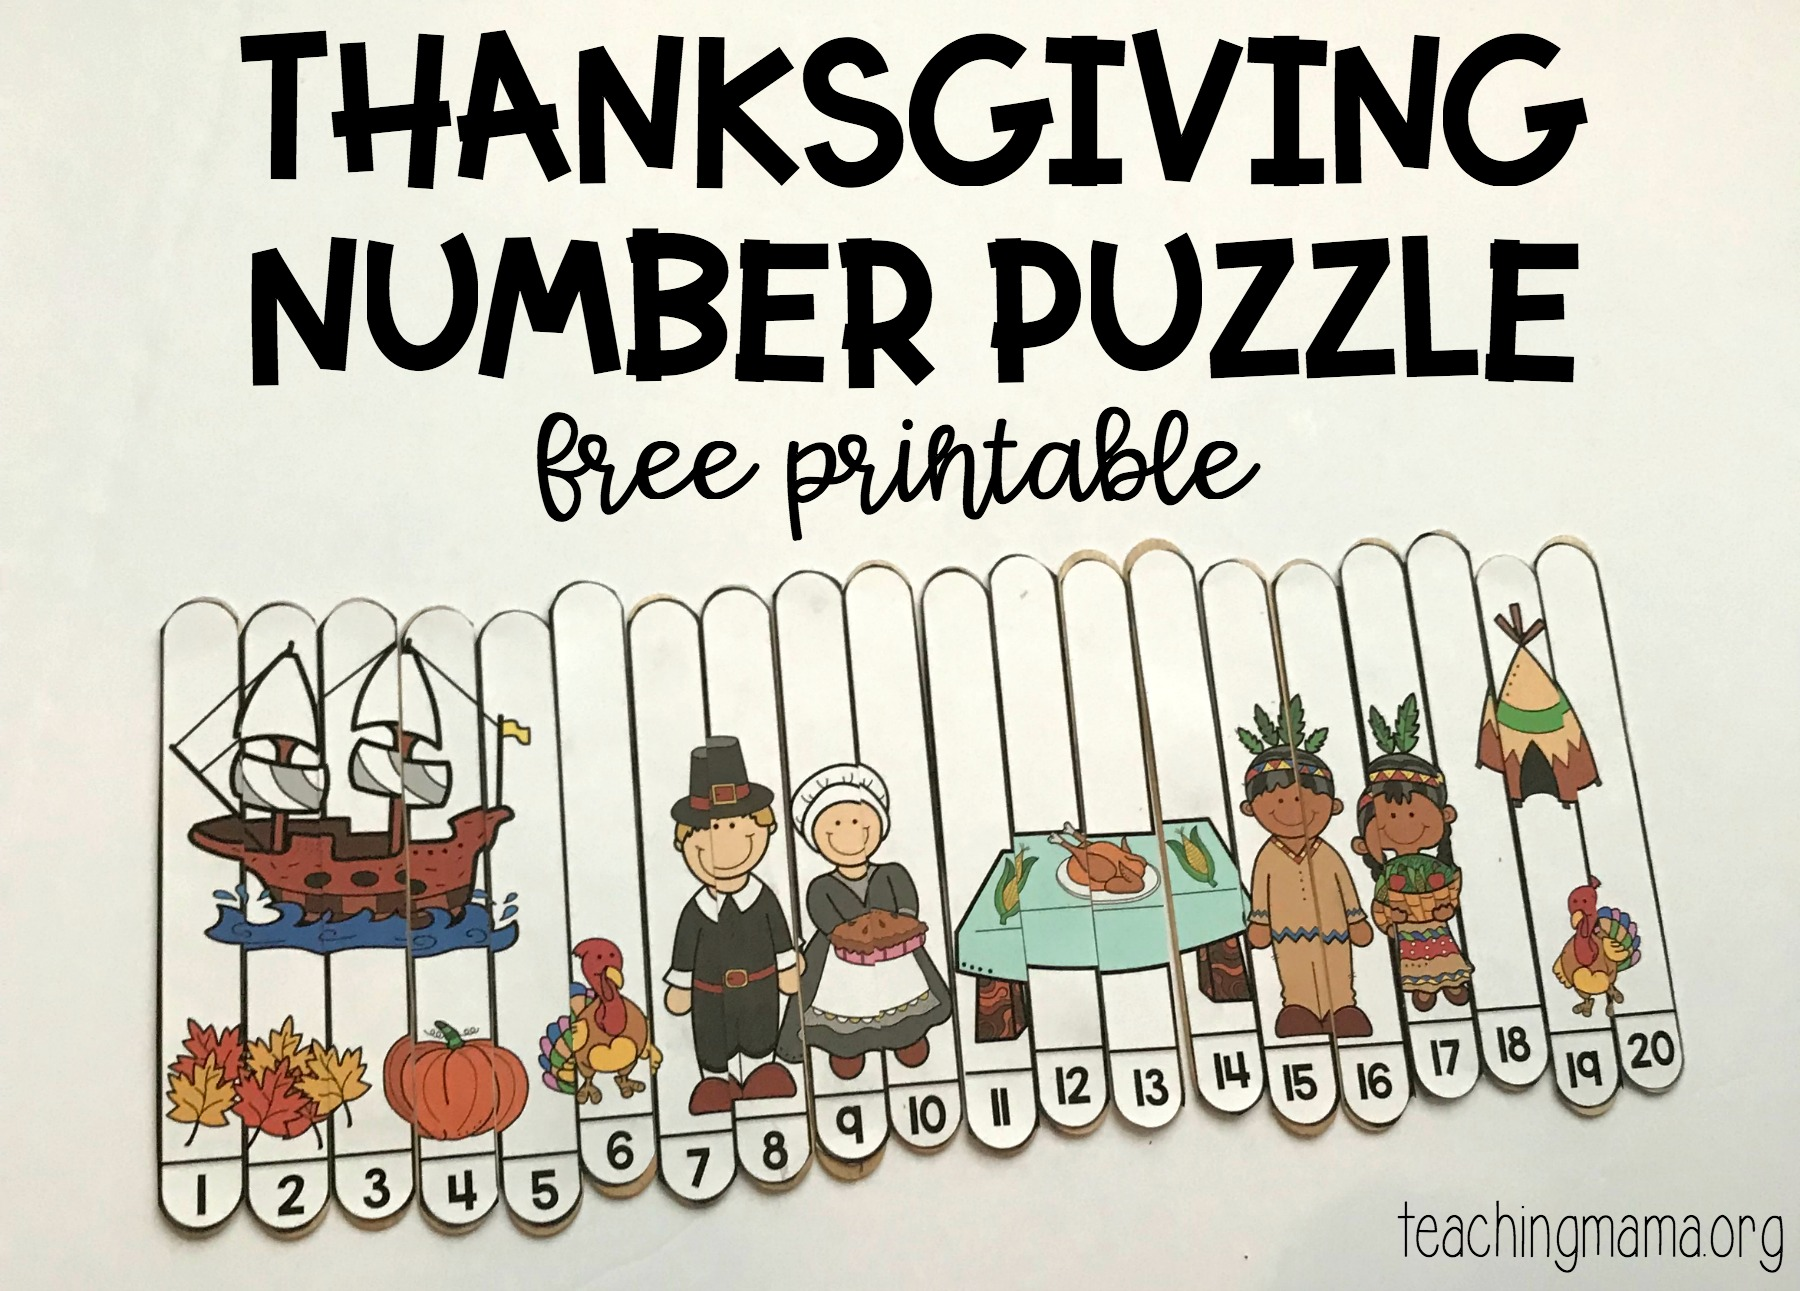 photo regarding Free Printable Number Puzzles titled Thanksgiving Selection Puzzle